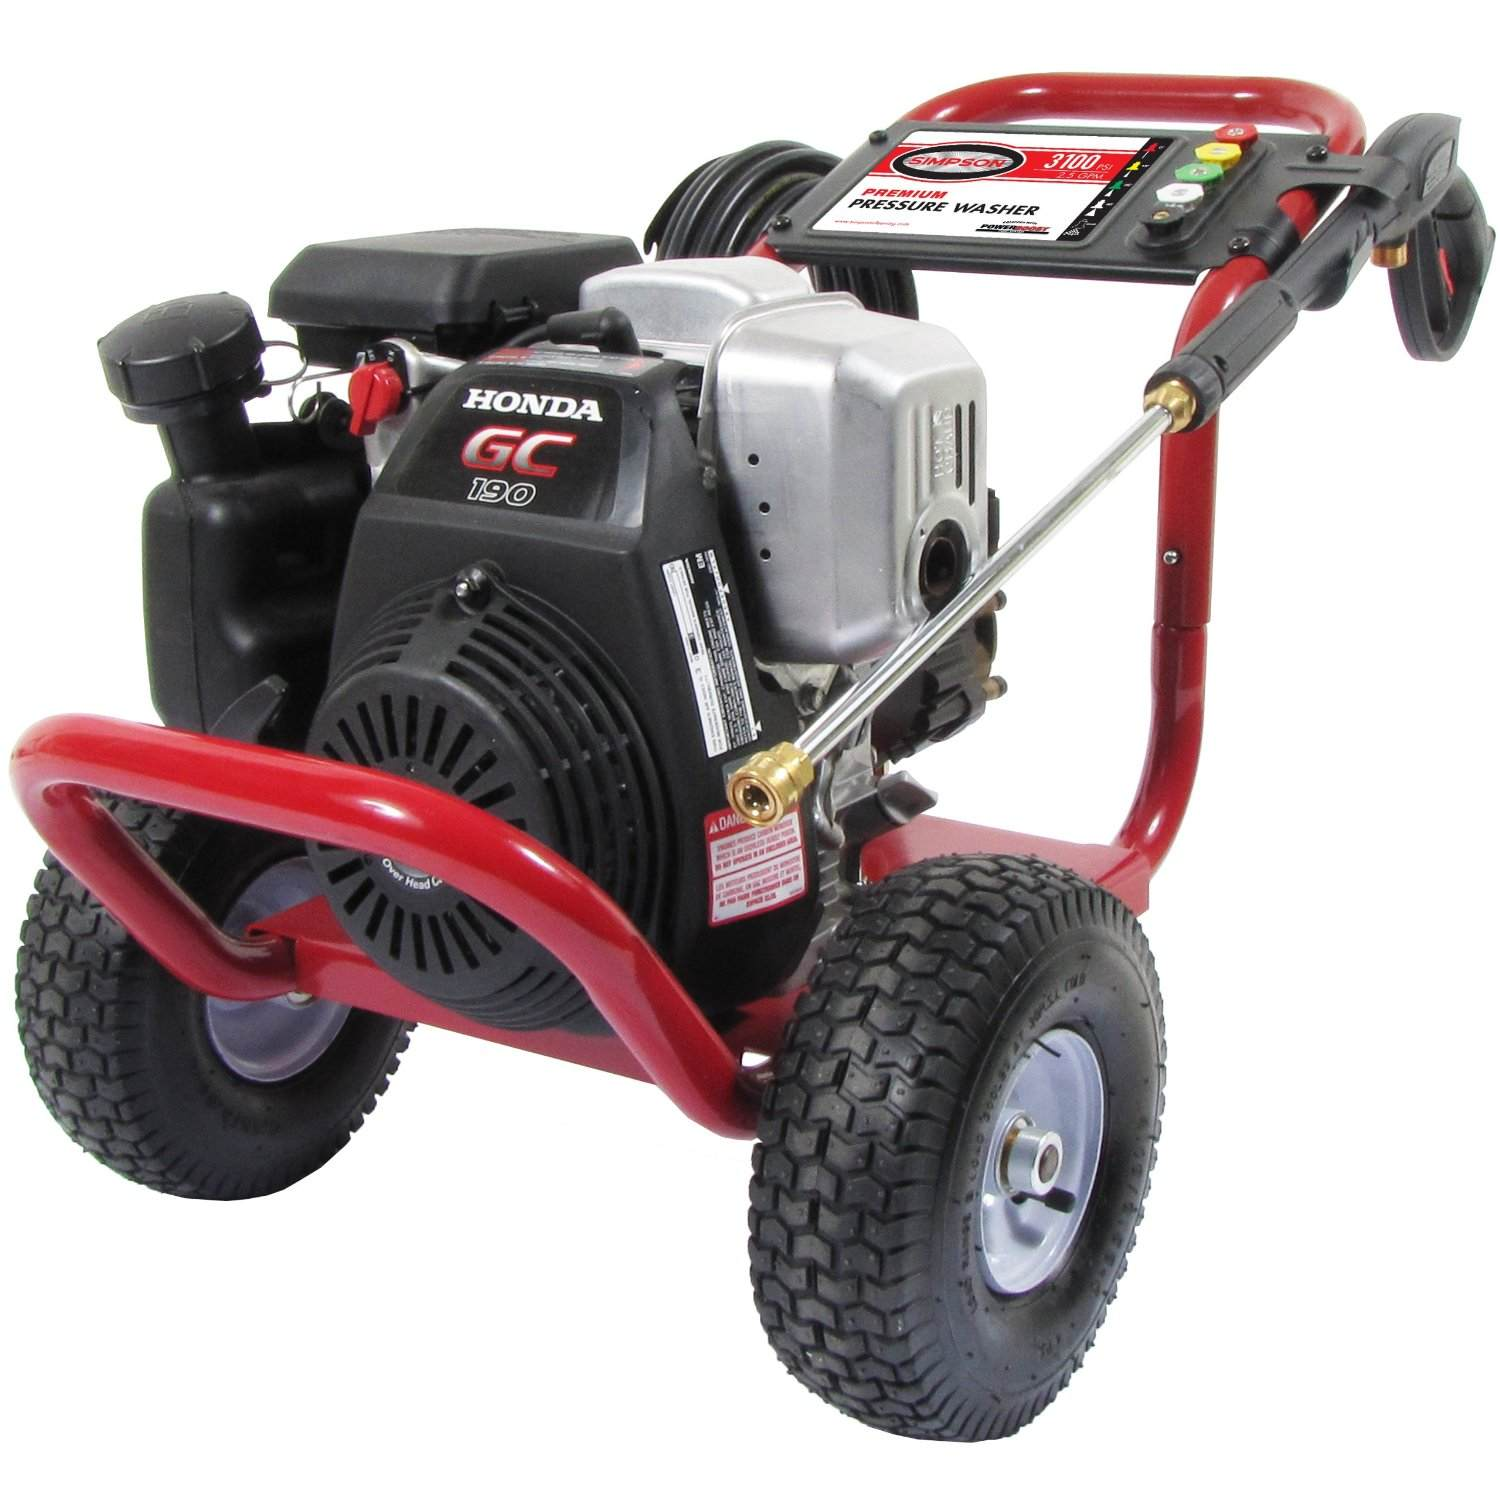 Simpson Megashot 3100 Gas Pressure Washer